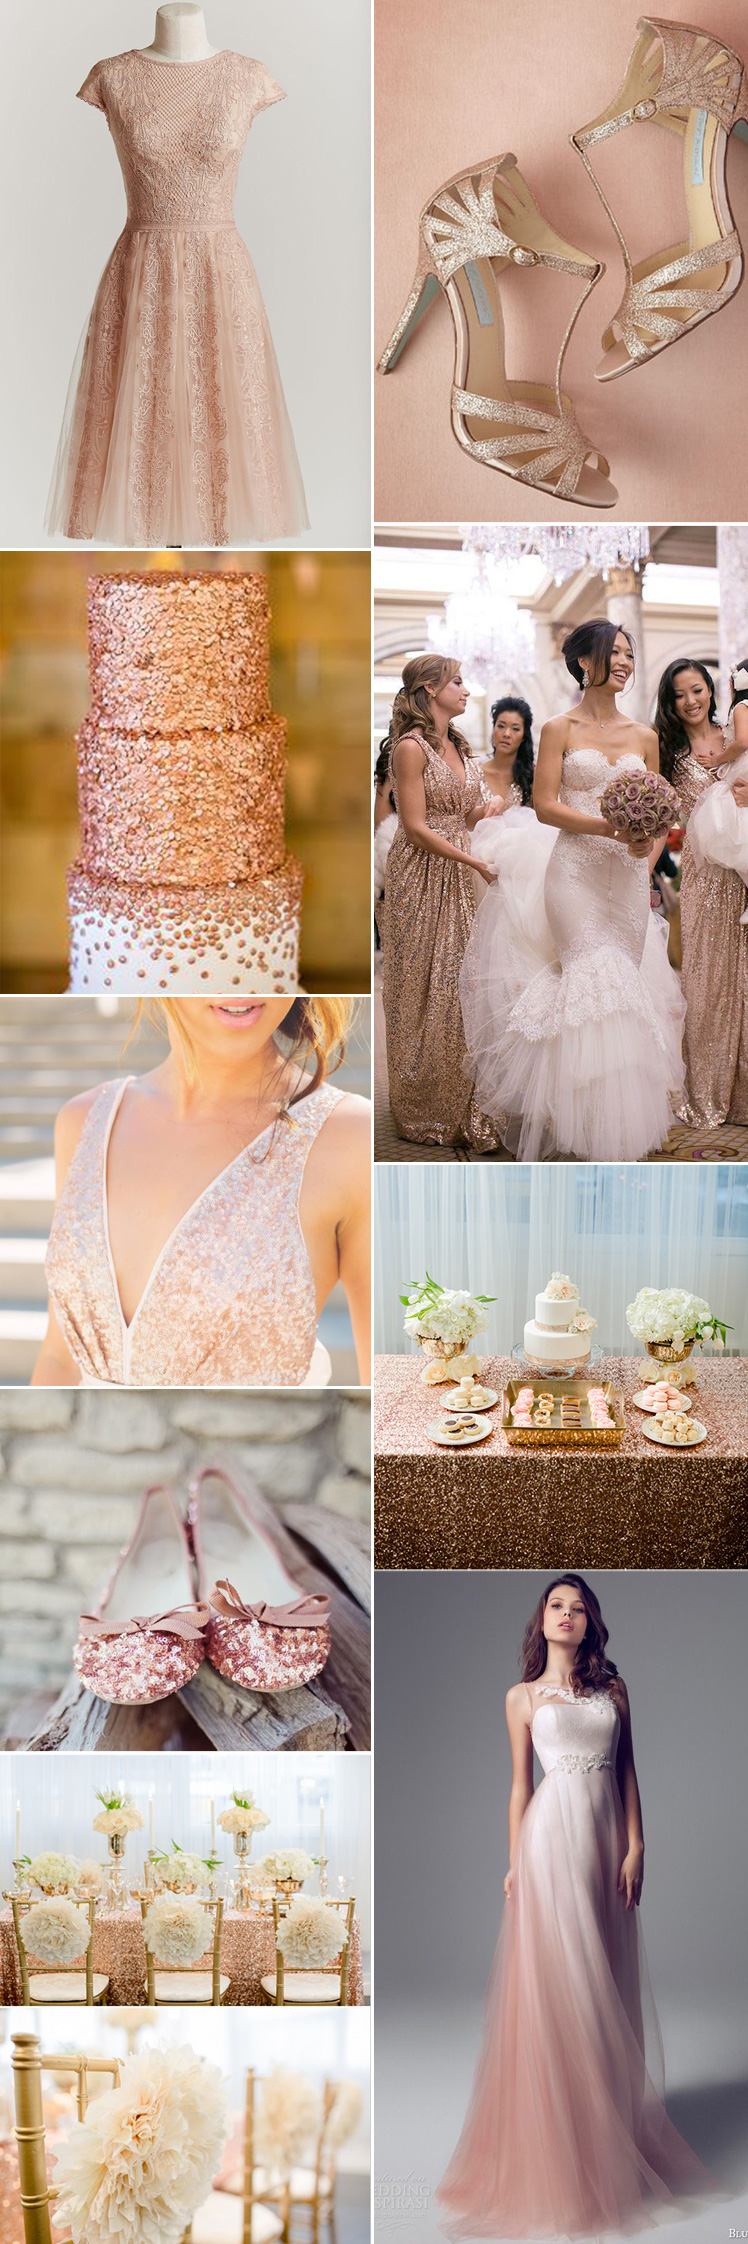 Images: Top Row Left via  Chic Vintage Brides  | Top Row Right via  Green Wedding Shoes  | Second Row Left via Wedding Chicks | Second Row Right via  Aisle Perfect  | Third Row Left via  One Wed  | Third Row Right via Wedding Chicks | Fourth Row Left via  Wedding Party App  | Bottom Row Left via Wedding Chicks | Bottom Row Right via